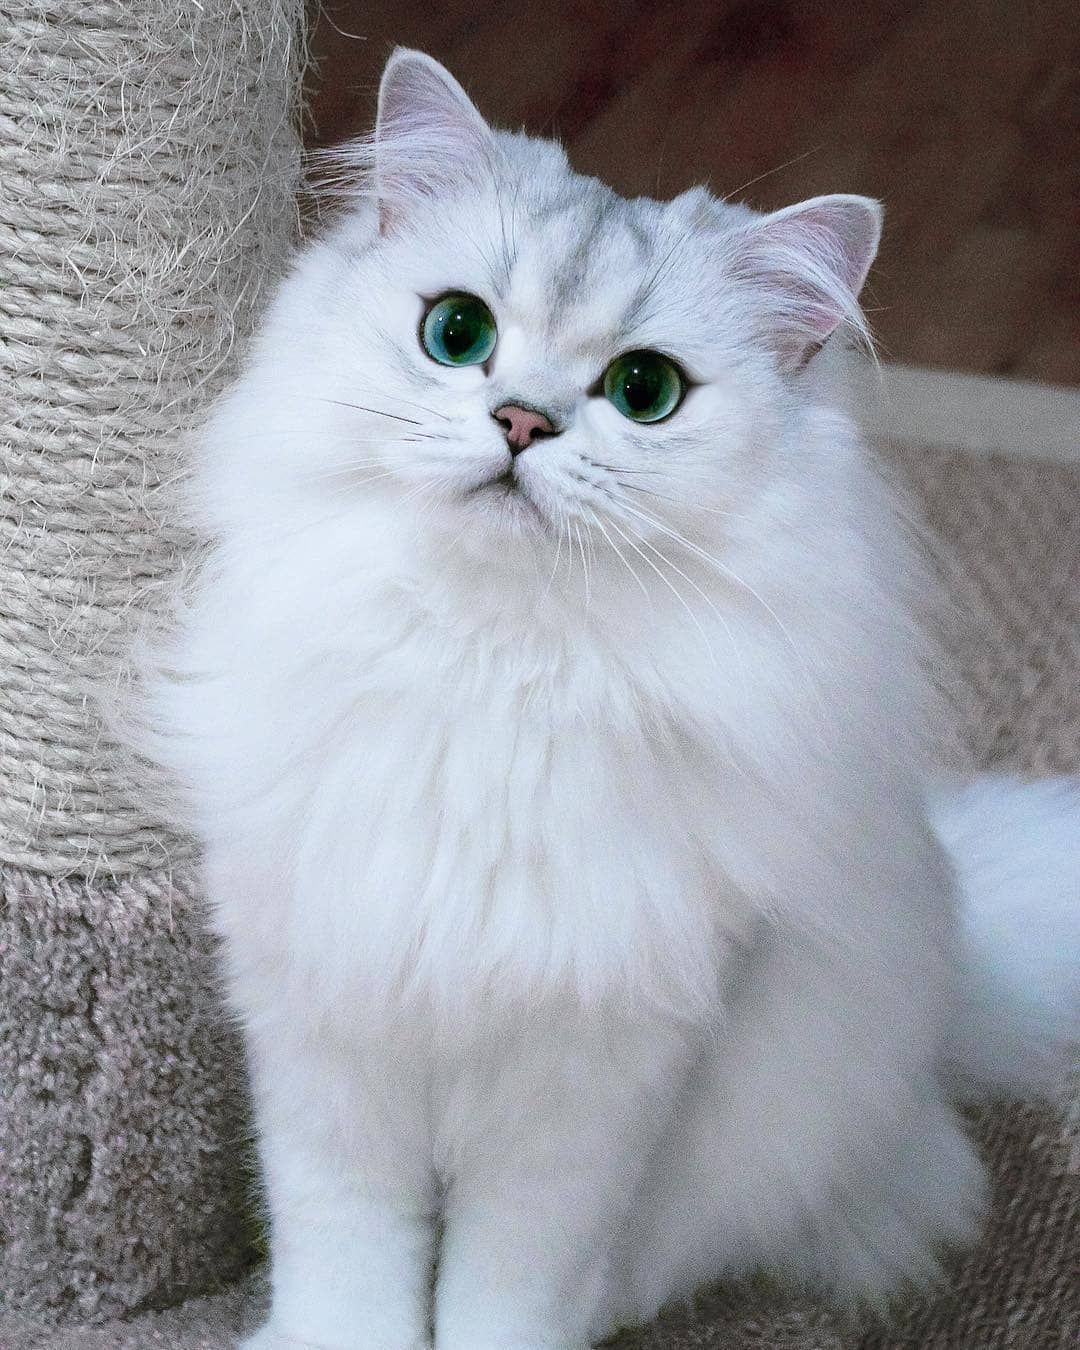 She Is Gorgeous Submit Your Cat S Photo To Our Contest Email To Be Featured Notification On Kittens Of W Cute Cats Cats Kittens Cutest